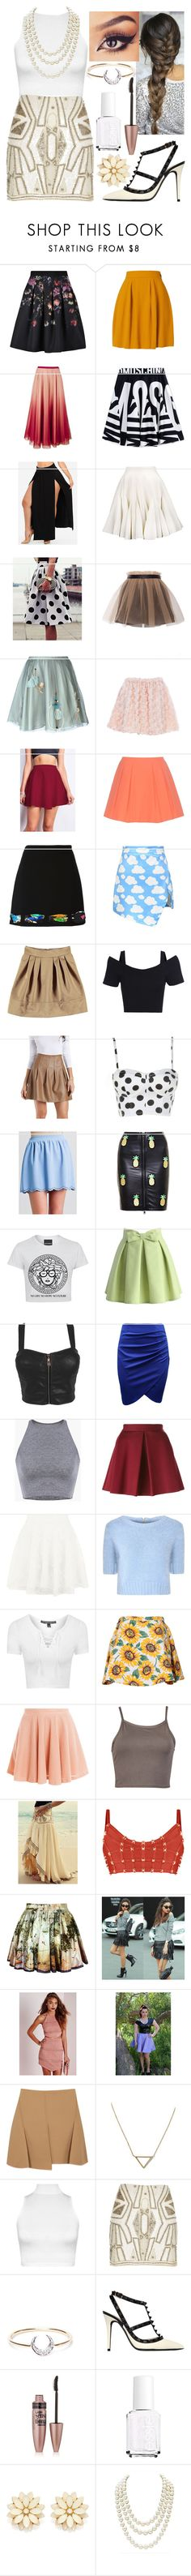 """""""0265"""" by doglover43 ❤ liked on Polyvore featuring Ted Baker, RED Valentino, Moschino, Yufash, Alice + Olivia, Boutique Moschino, Chicnova Fashion, Charlotte Russe, Love Leather and Chicwish"""